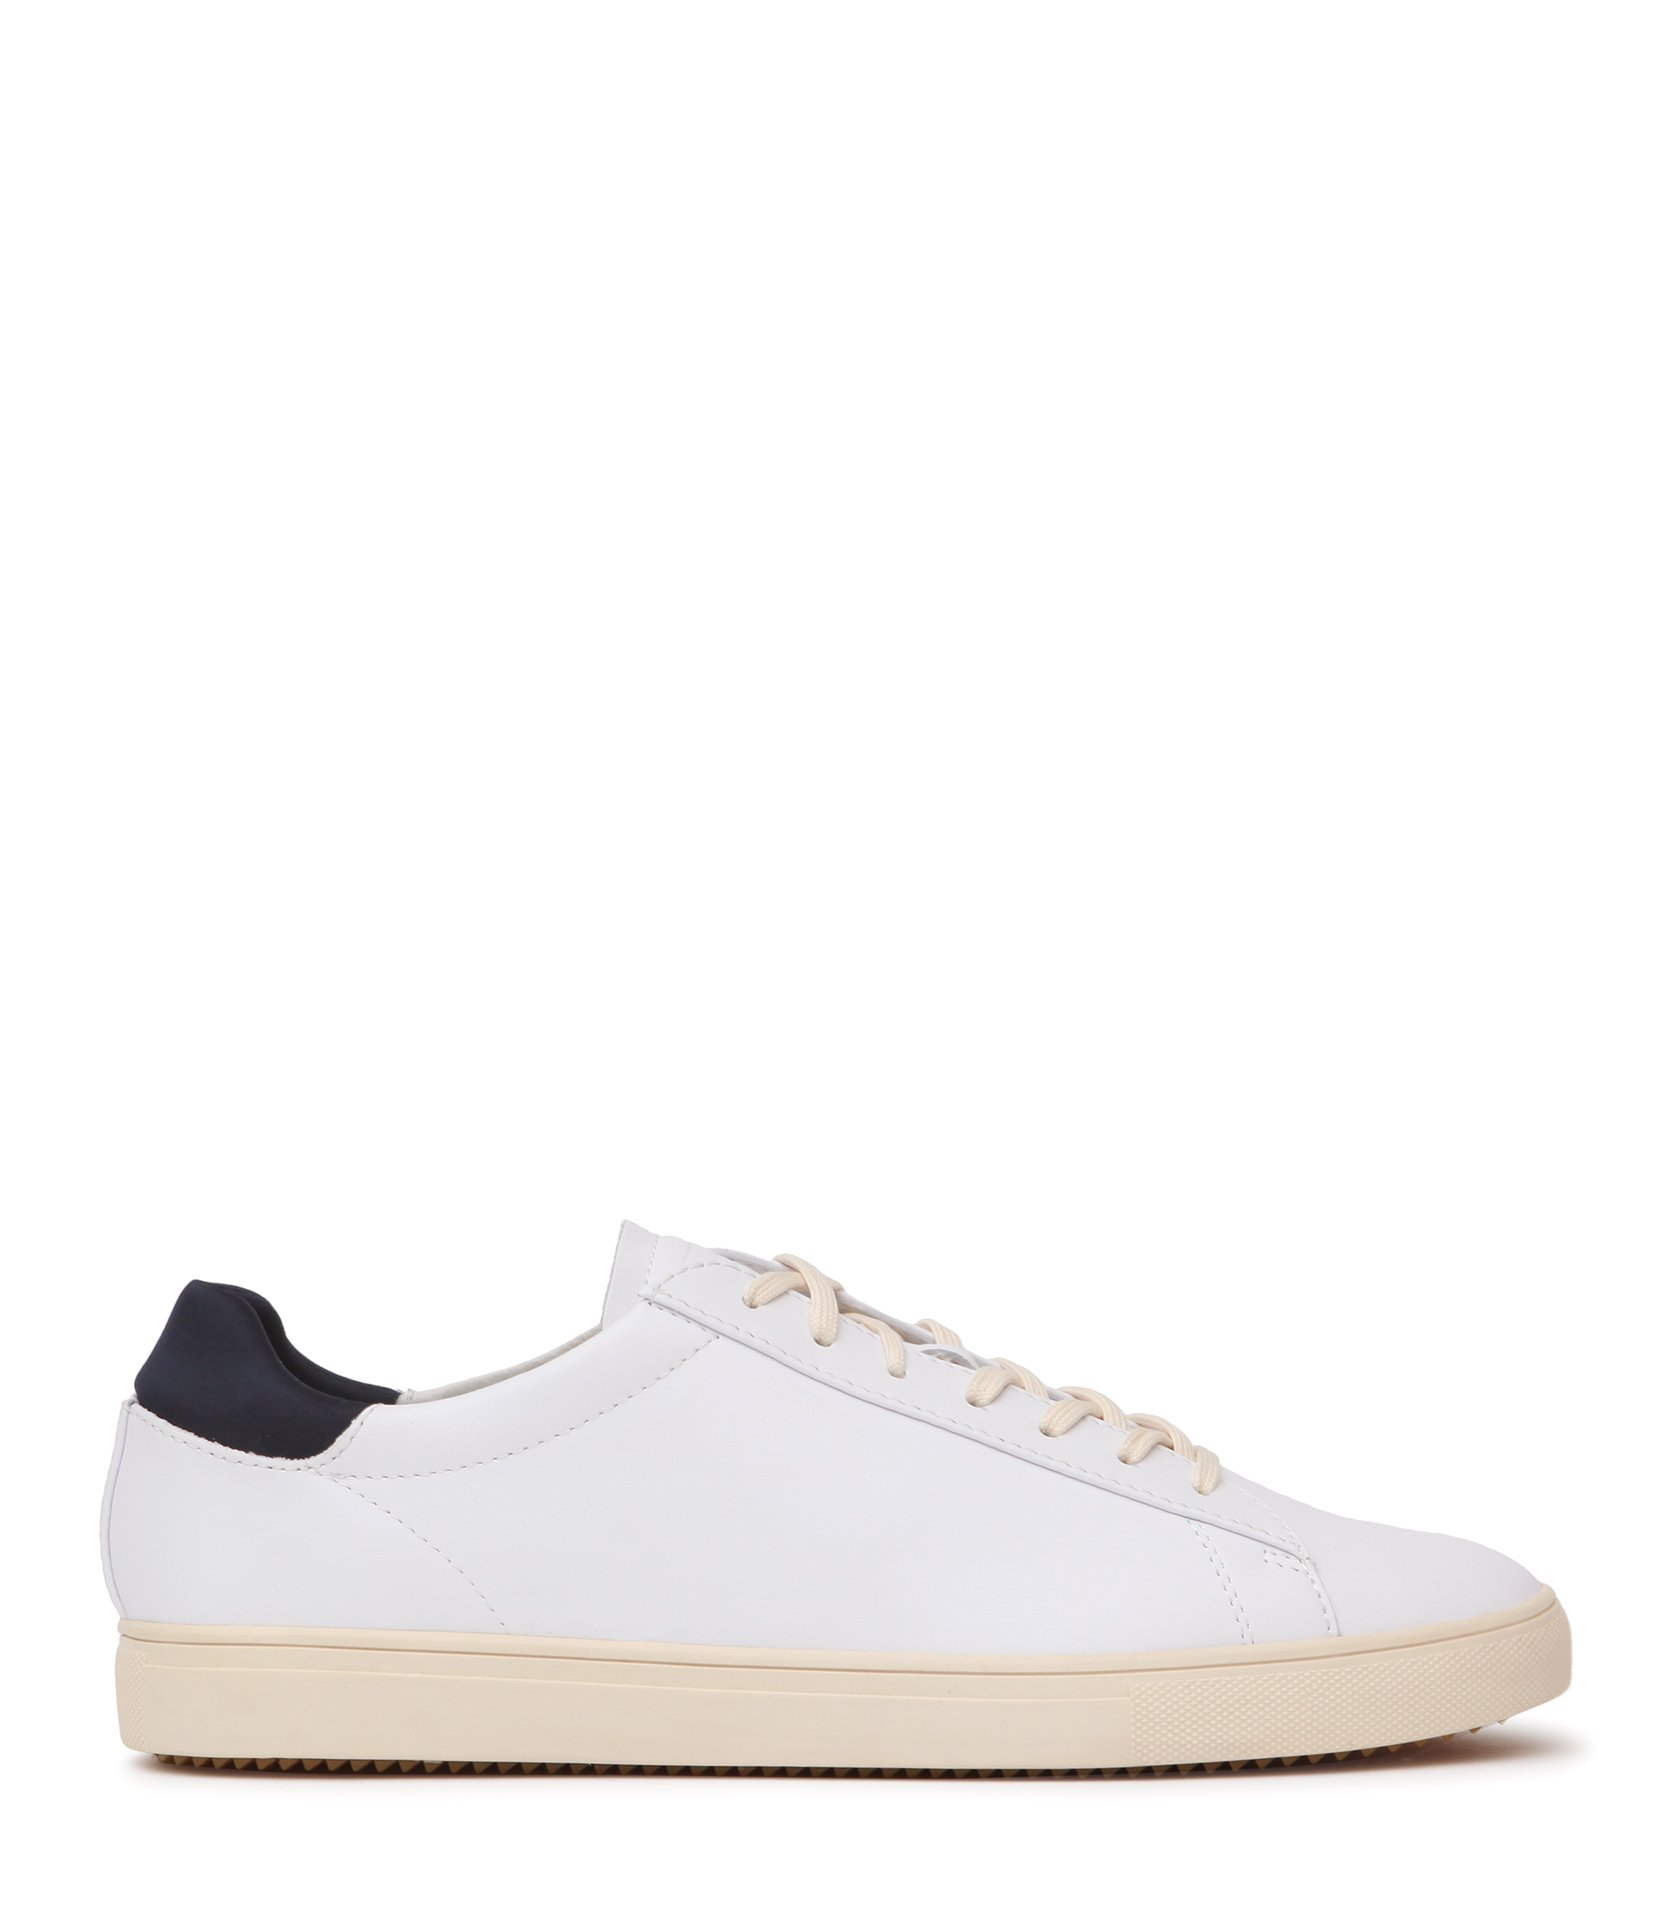 Reiss White Bradley Clae Leather Sneakers